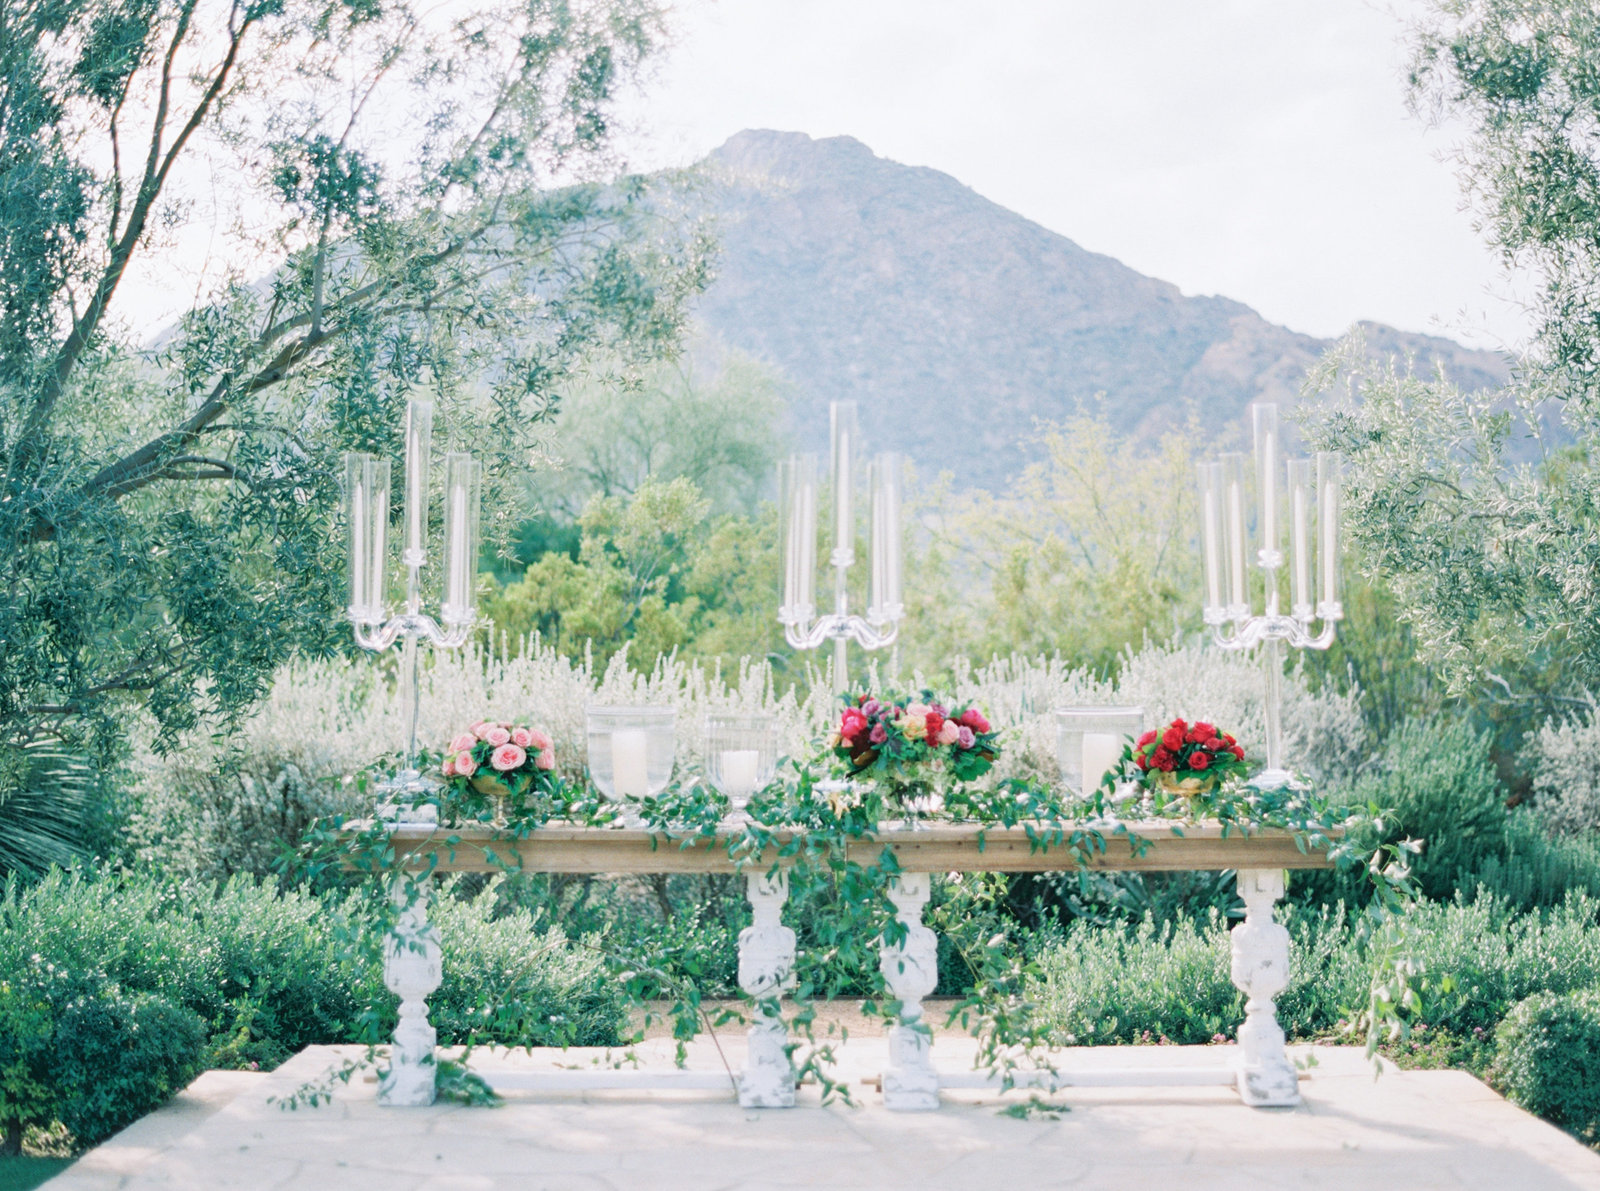 El chorro lodge El chorro wedding Lincoln road Paradise valley wedding Scottsdale wedding Flower studio Glamour and wood Celebrations in paper Melissa jill Stephanie fay photography Ruze cake house La tavola linens